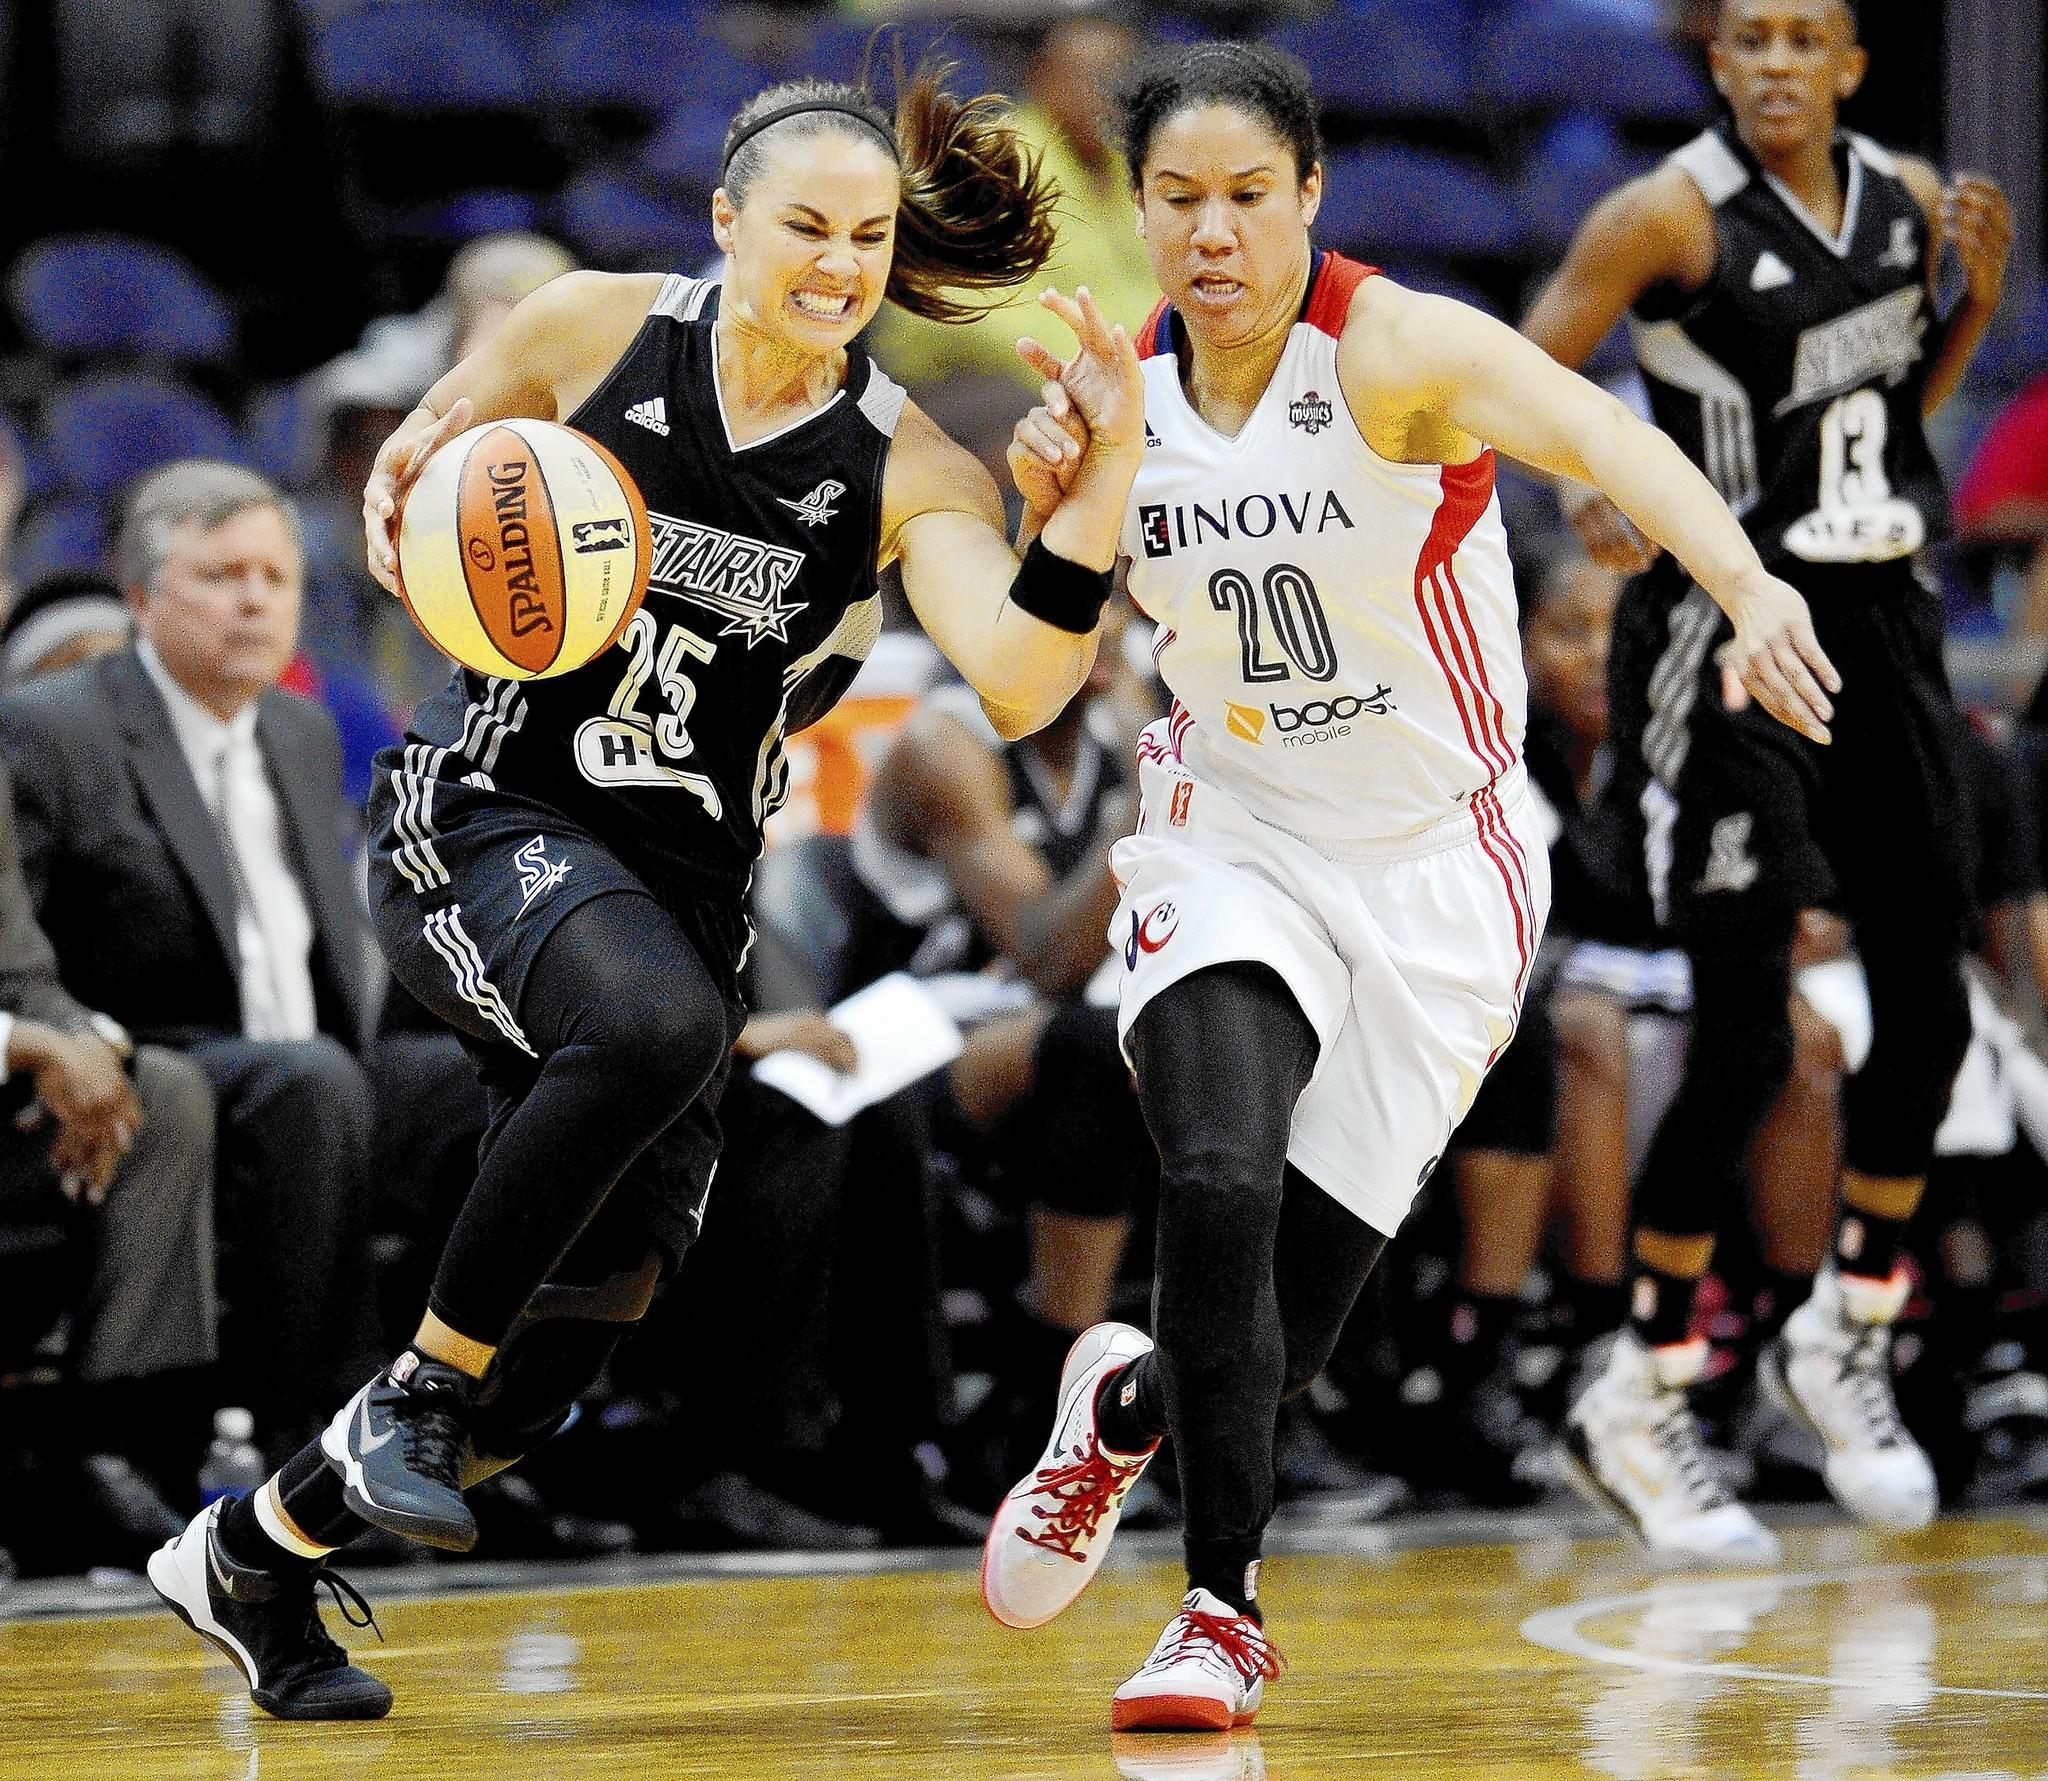 San Antonio Stars guard Becky Hammon (25) tangles with Washington Mystics guard Kara Lawson (20) as she dribbles in the fourth quarter at the Verizon Center in Washington, Sunday, June 29, 2014.